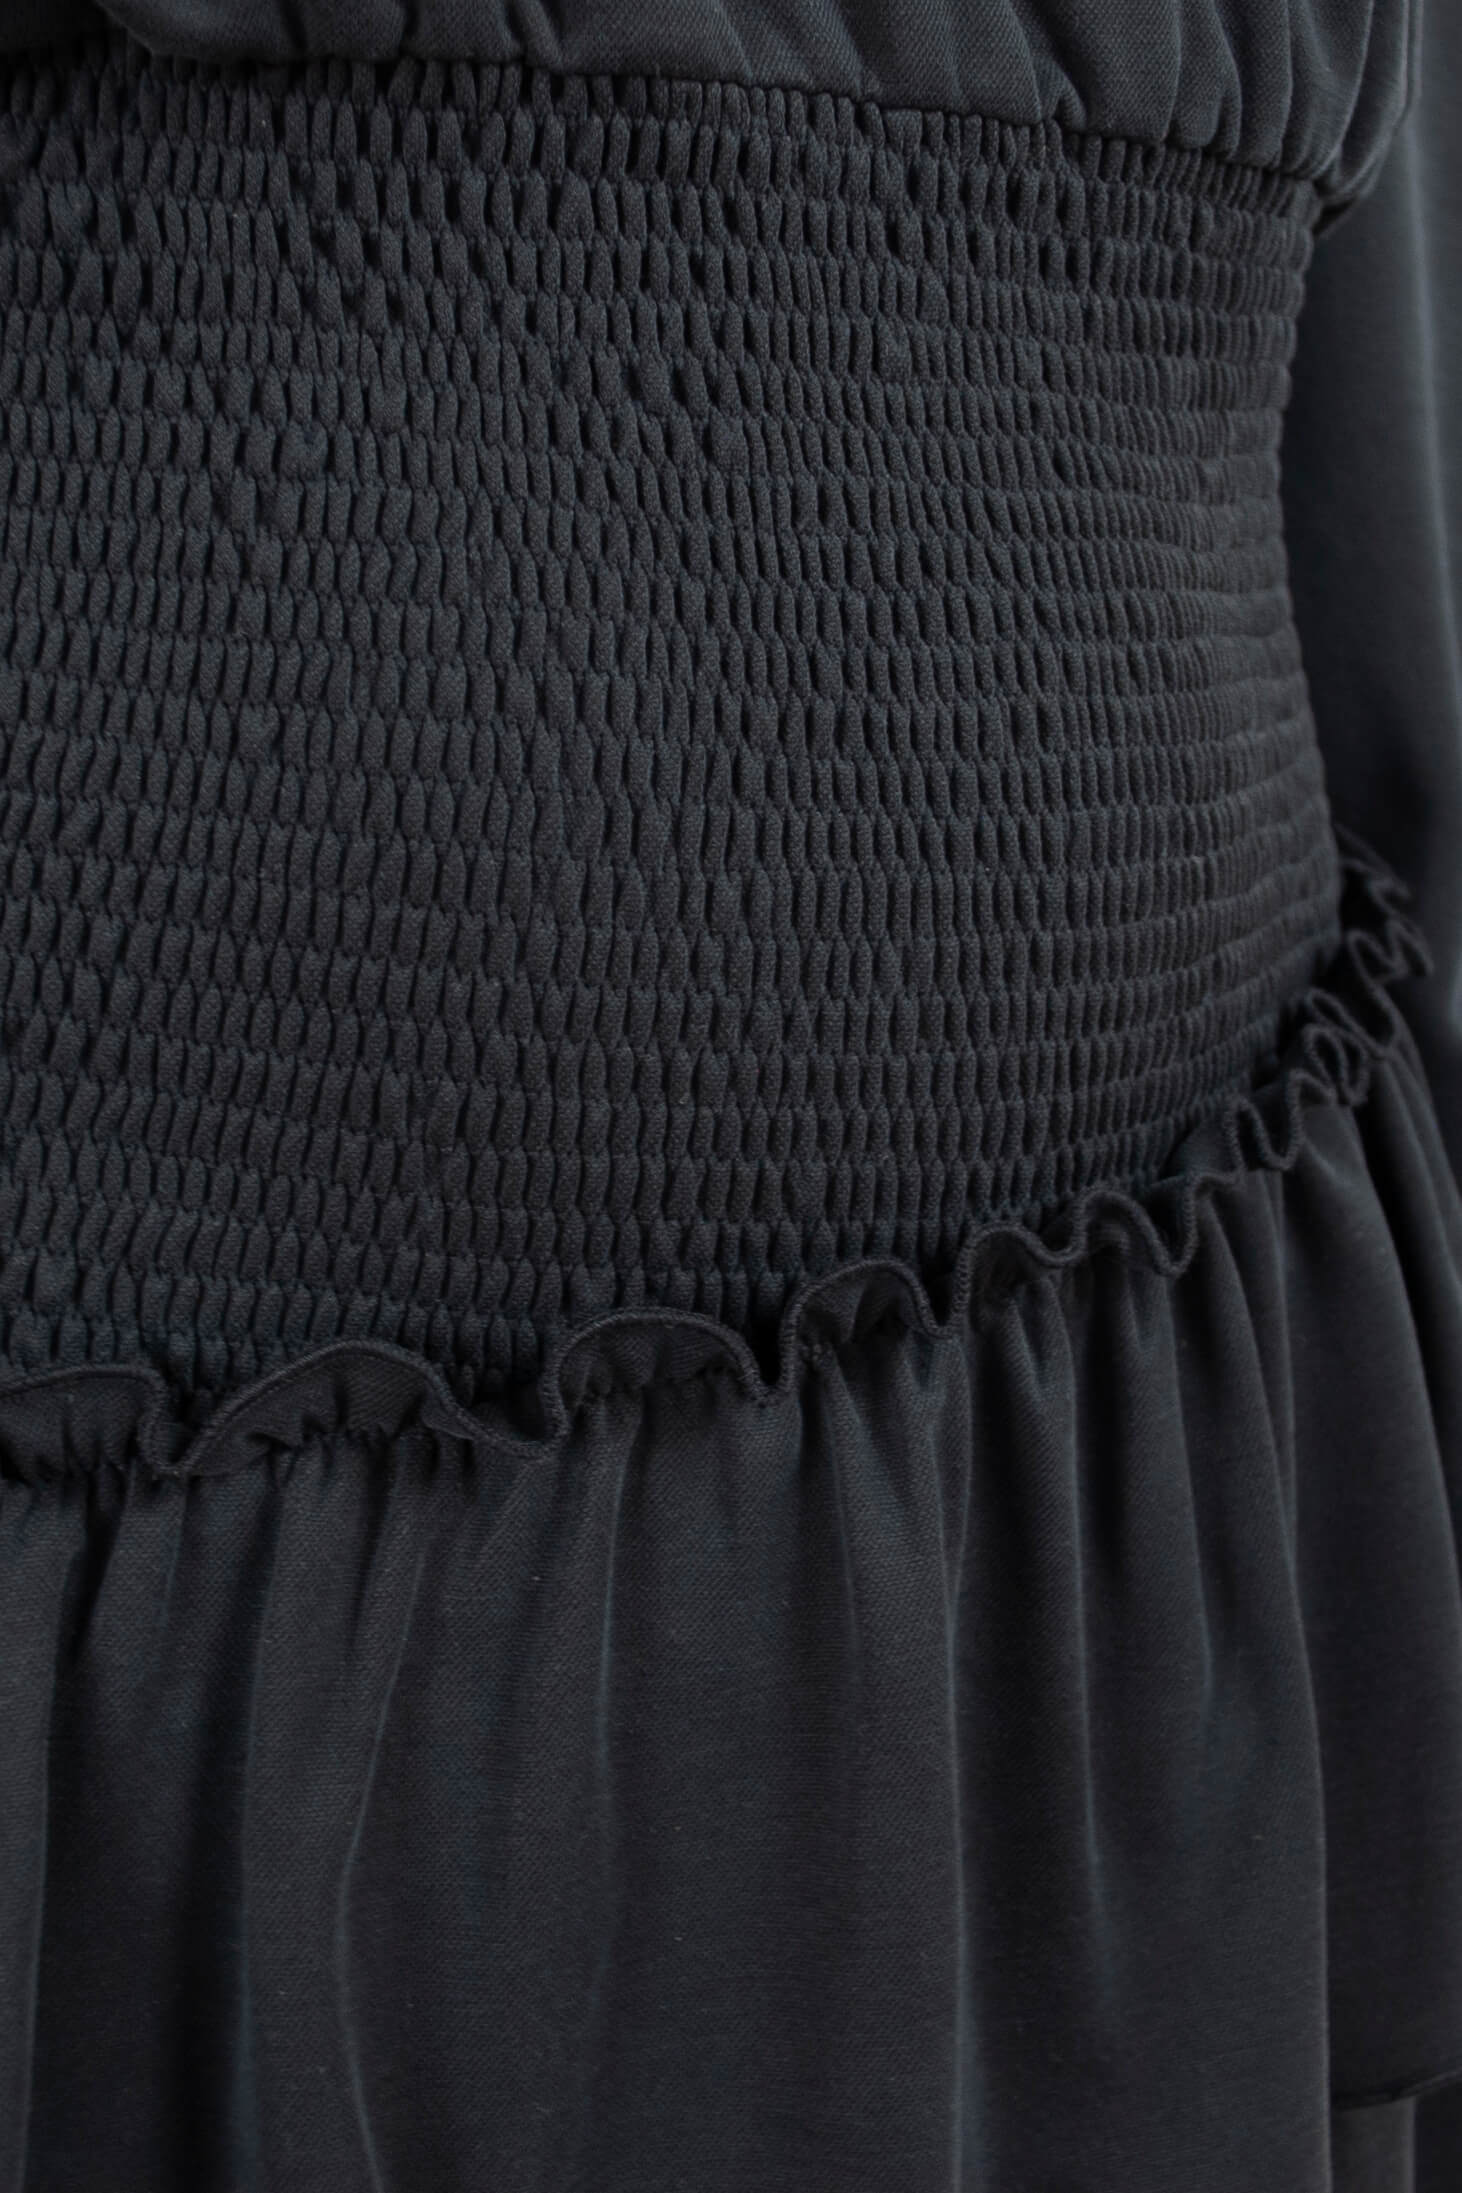 Black Dress with Ruffles by Bombshe